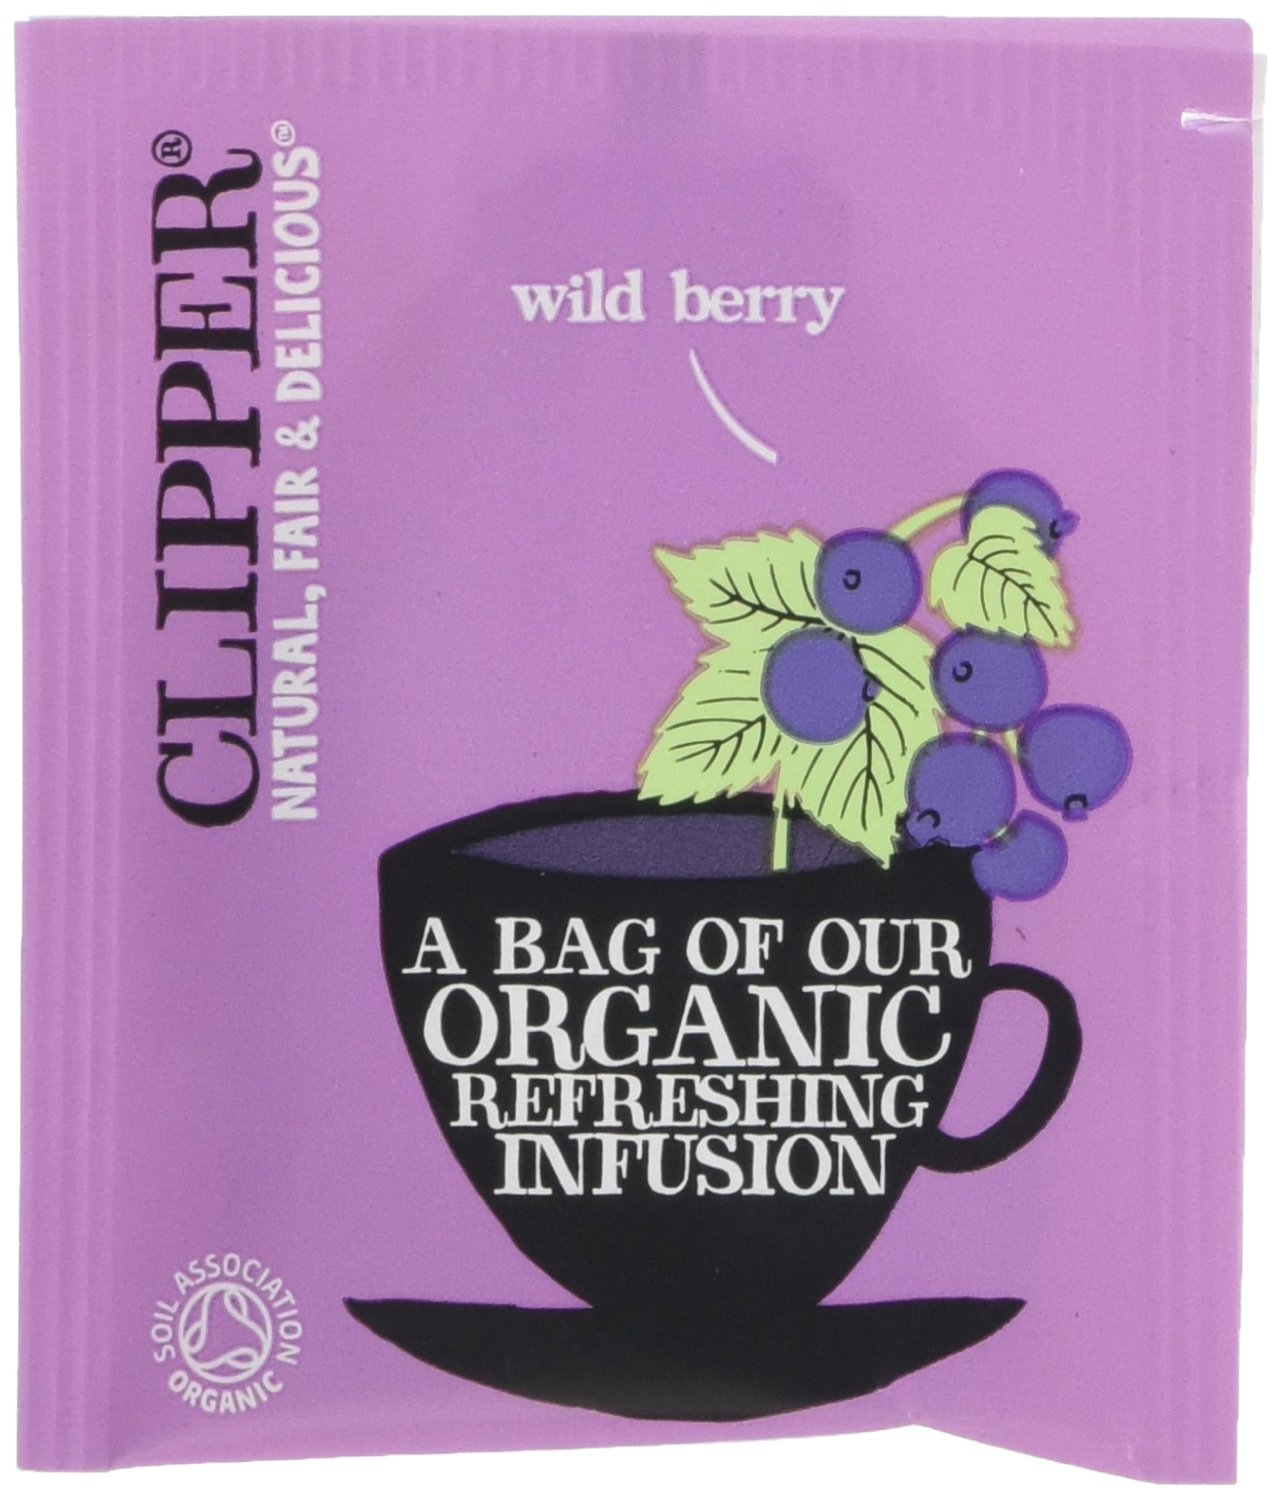 Clipper organic wild berry tea (soil association) (infusions) (250 bags) (a fruity tea with aromas of wildberry) (brews in 2-5 minutes)